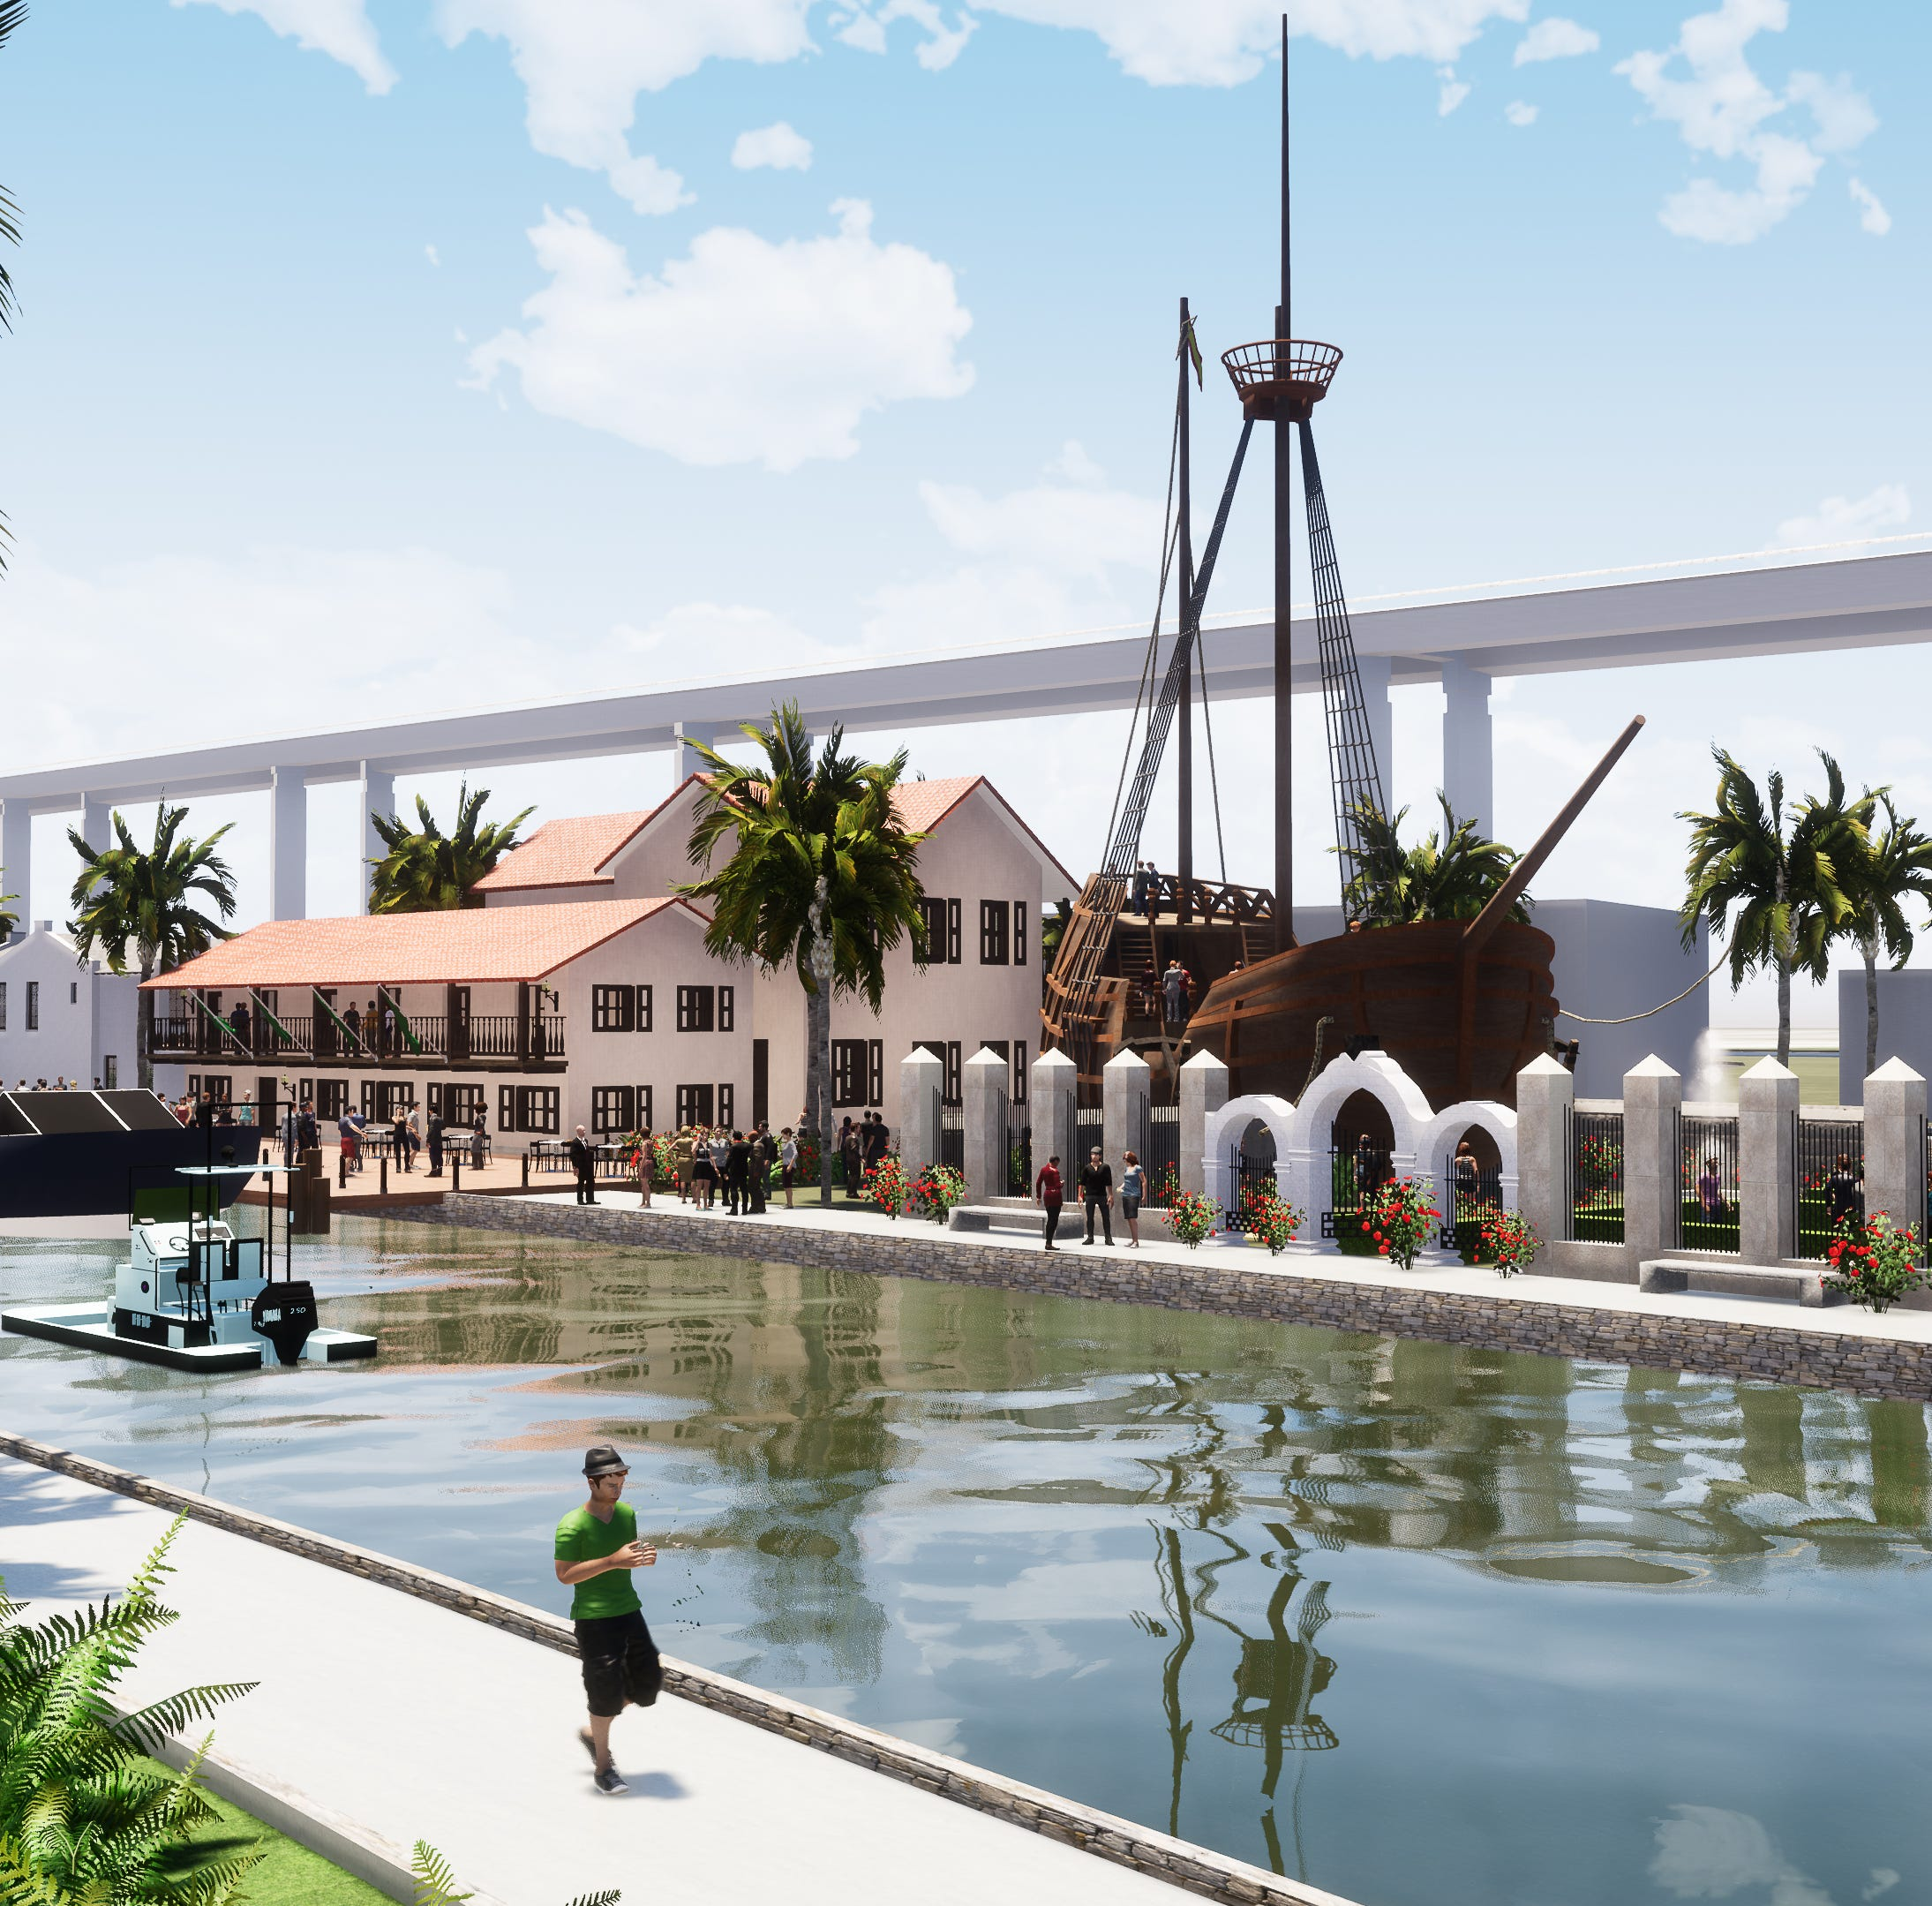 Why build a $40 million canal on Corpus Christi's North Beach? Let's see